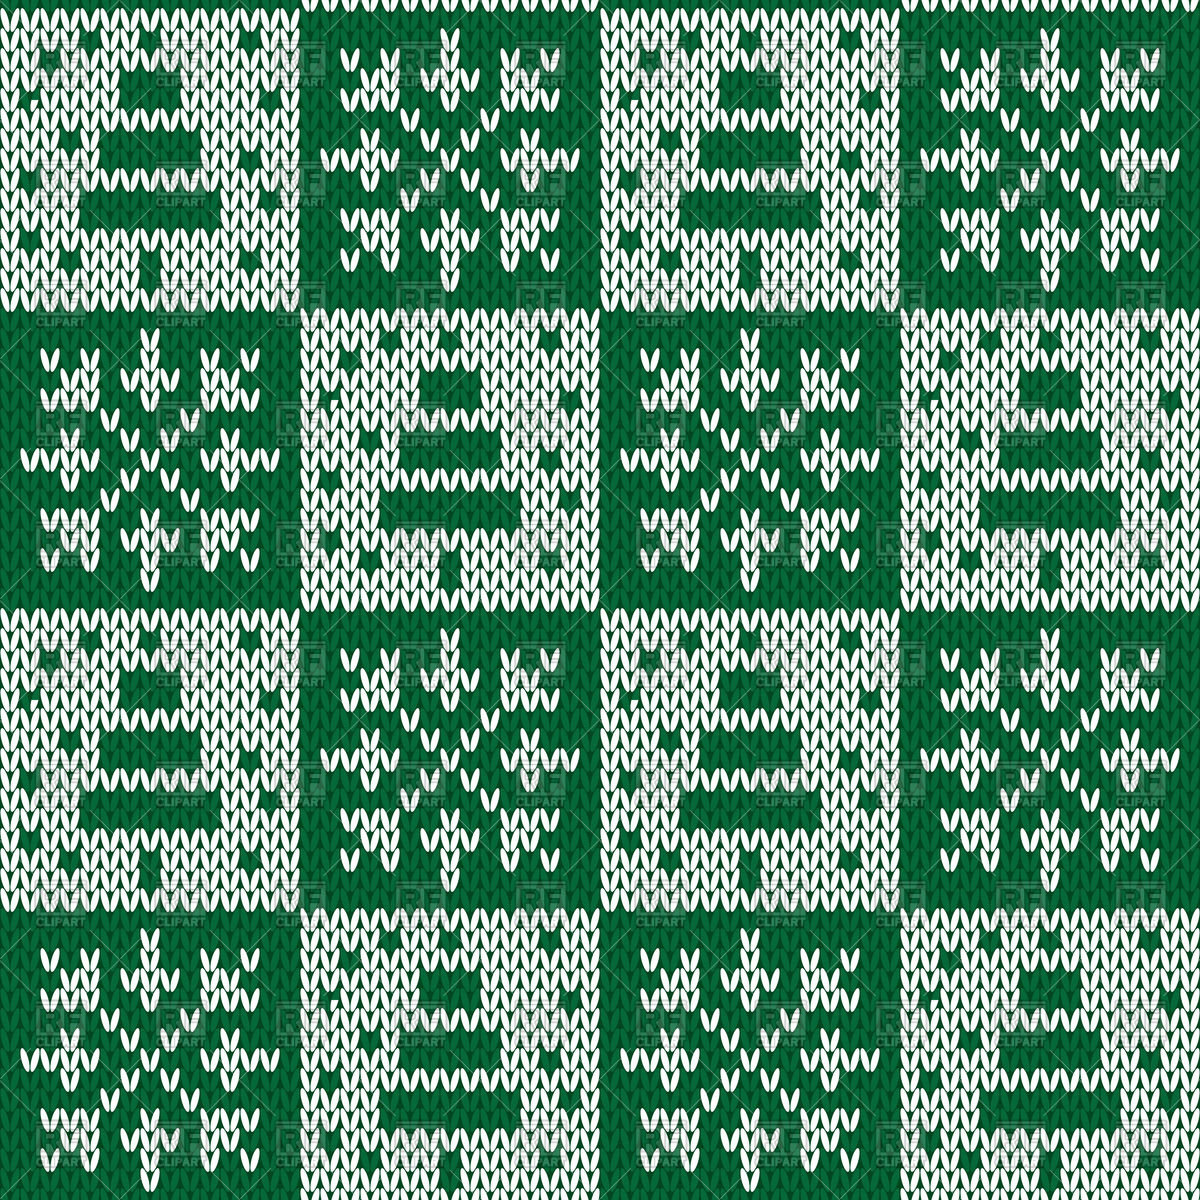 Seamless Knitting Patterns Seamless Knitted Pattern Made Of Snowflakes And Pine Trees Stock Vector Image